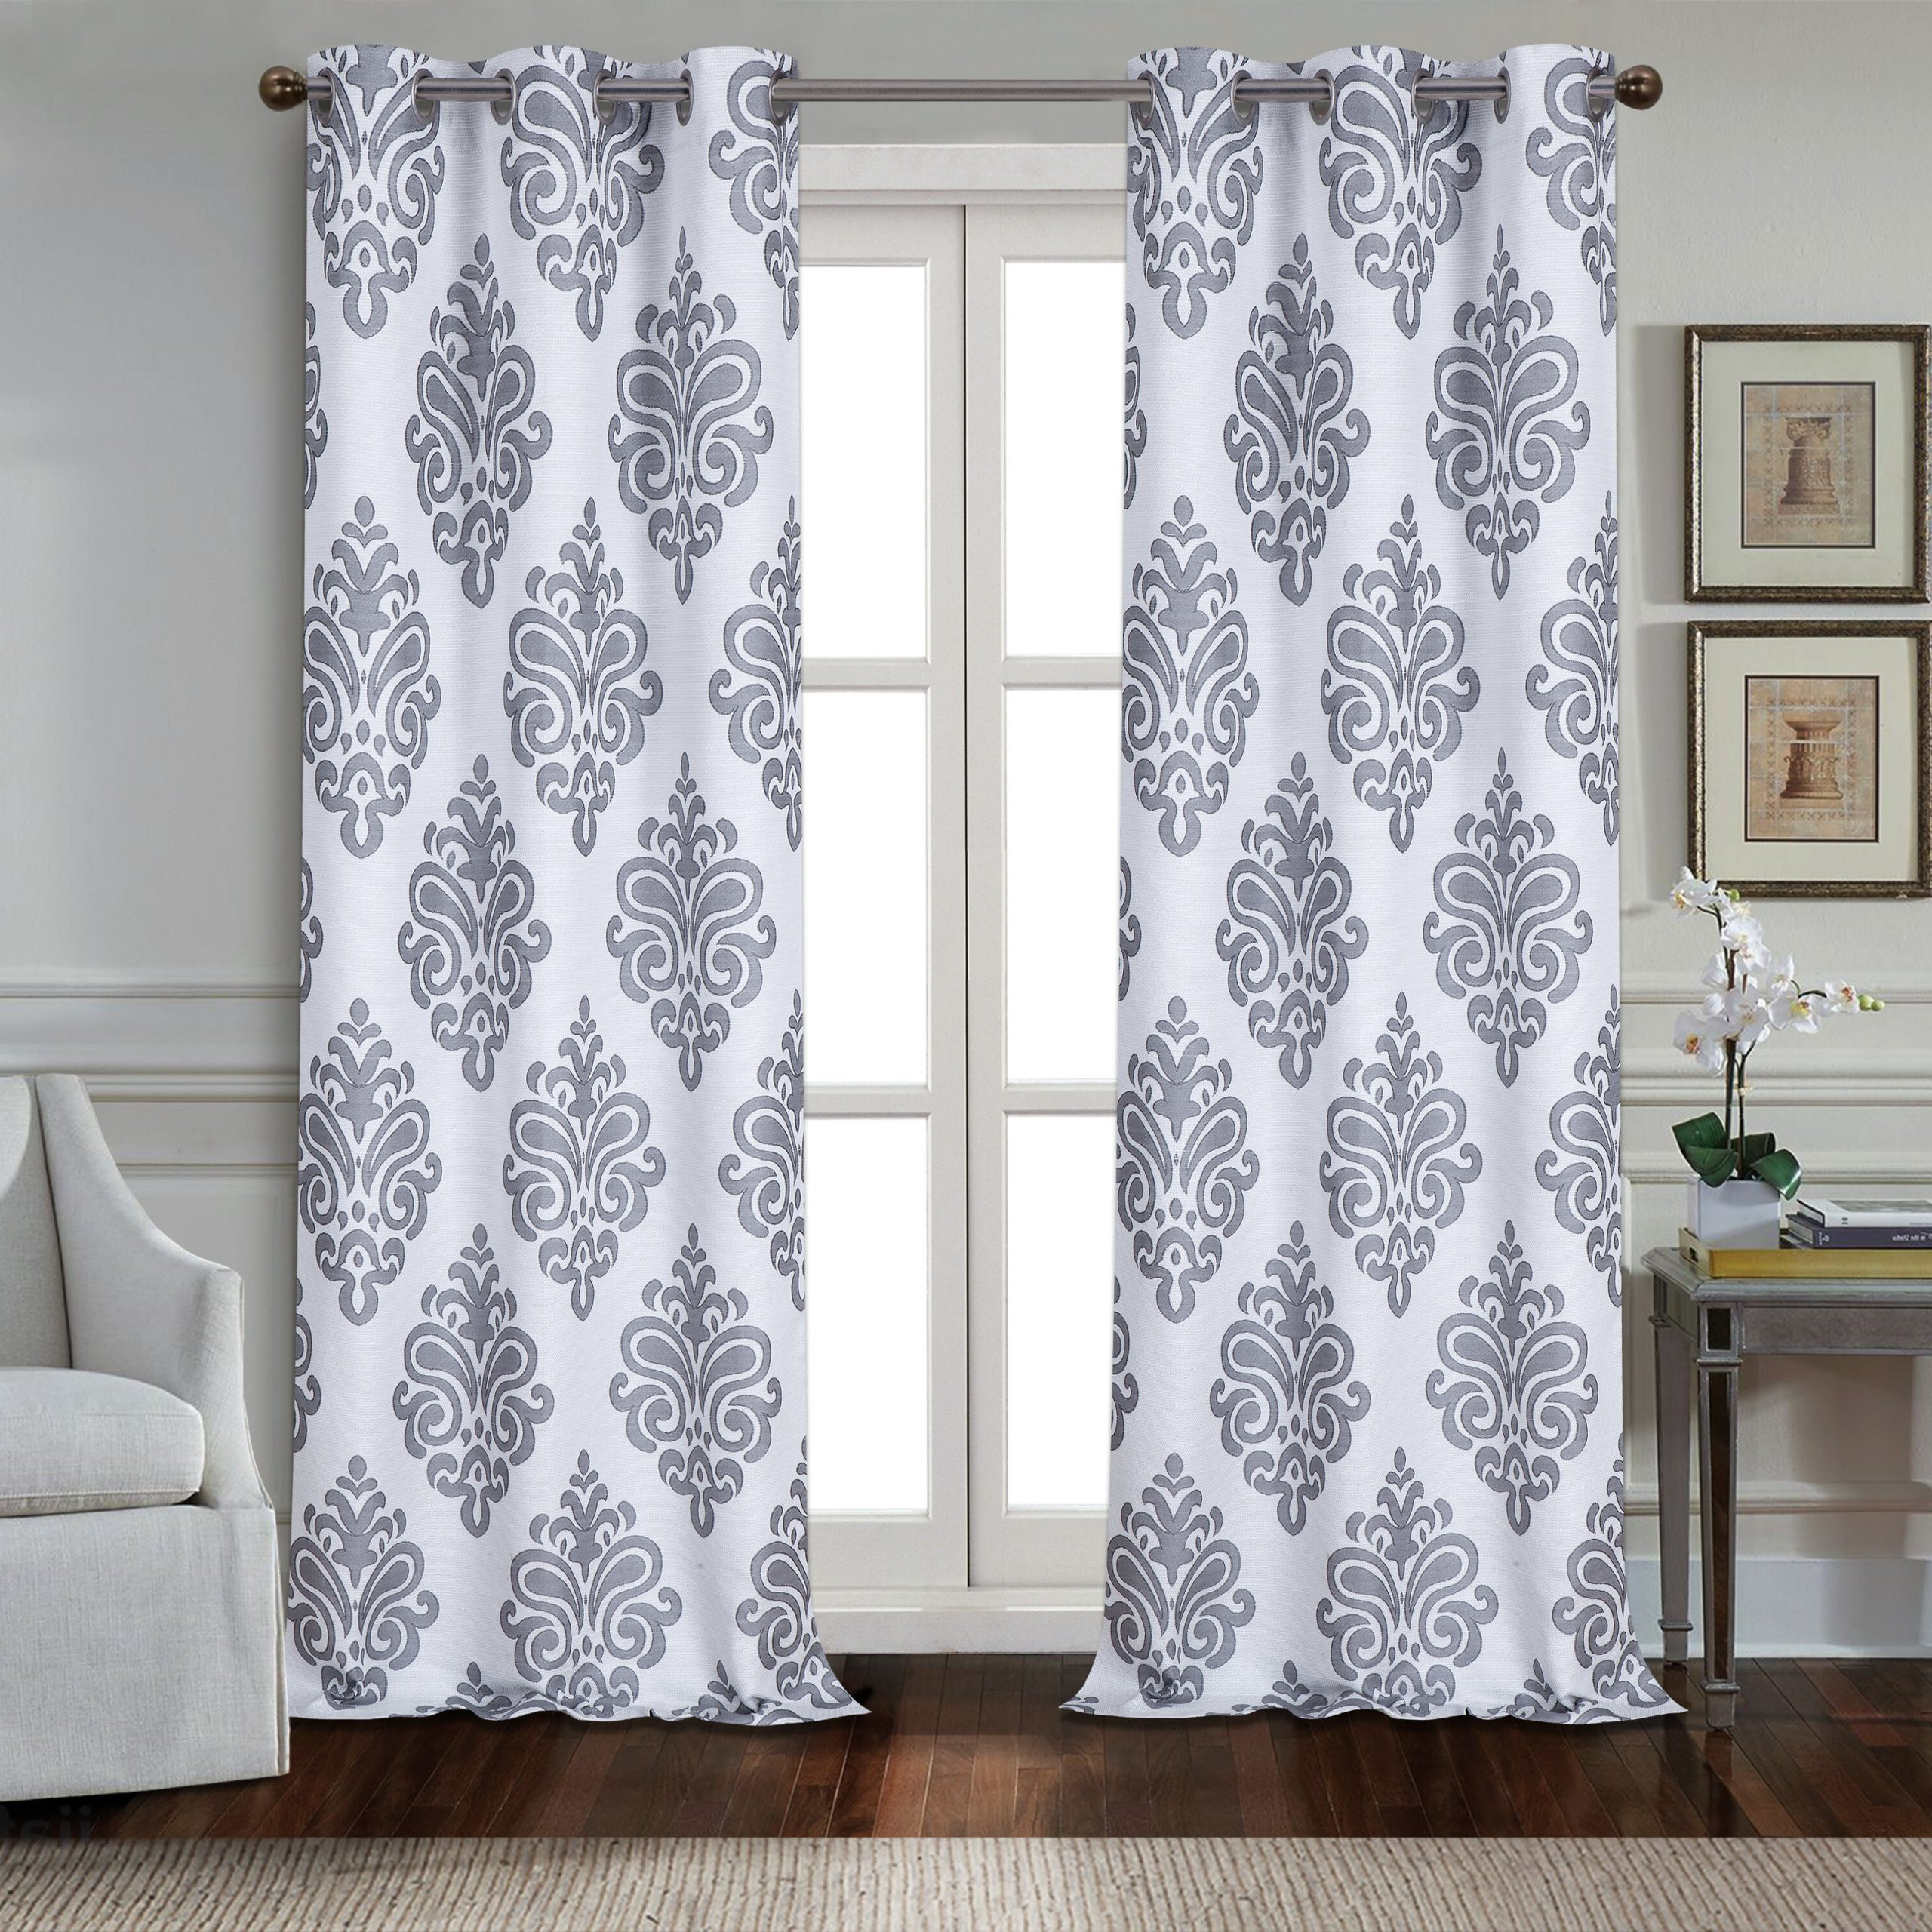 2021 Andorra Watercolor Floral Textured Sheer Single Curtain Panels With Regard To Cahawba Textured Appliqué Damask Room Darkening Grommet Panel Pair (View 17 of 20)